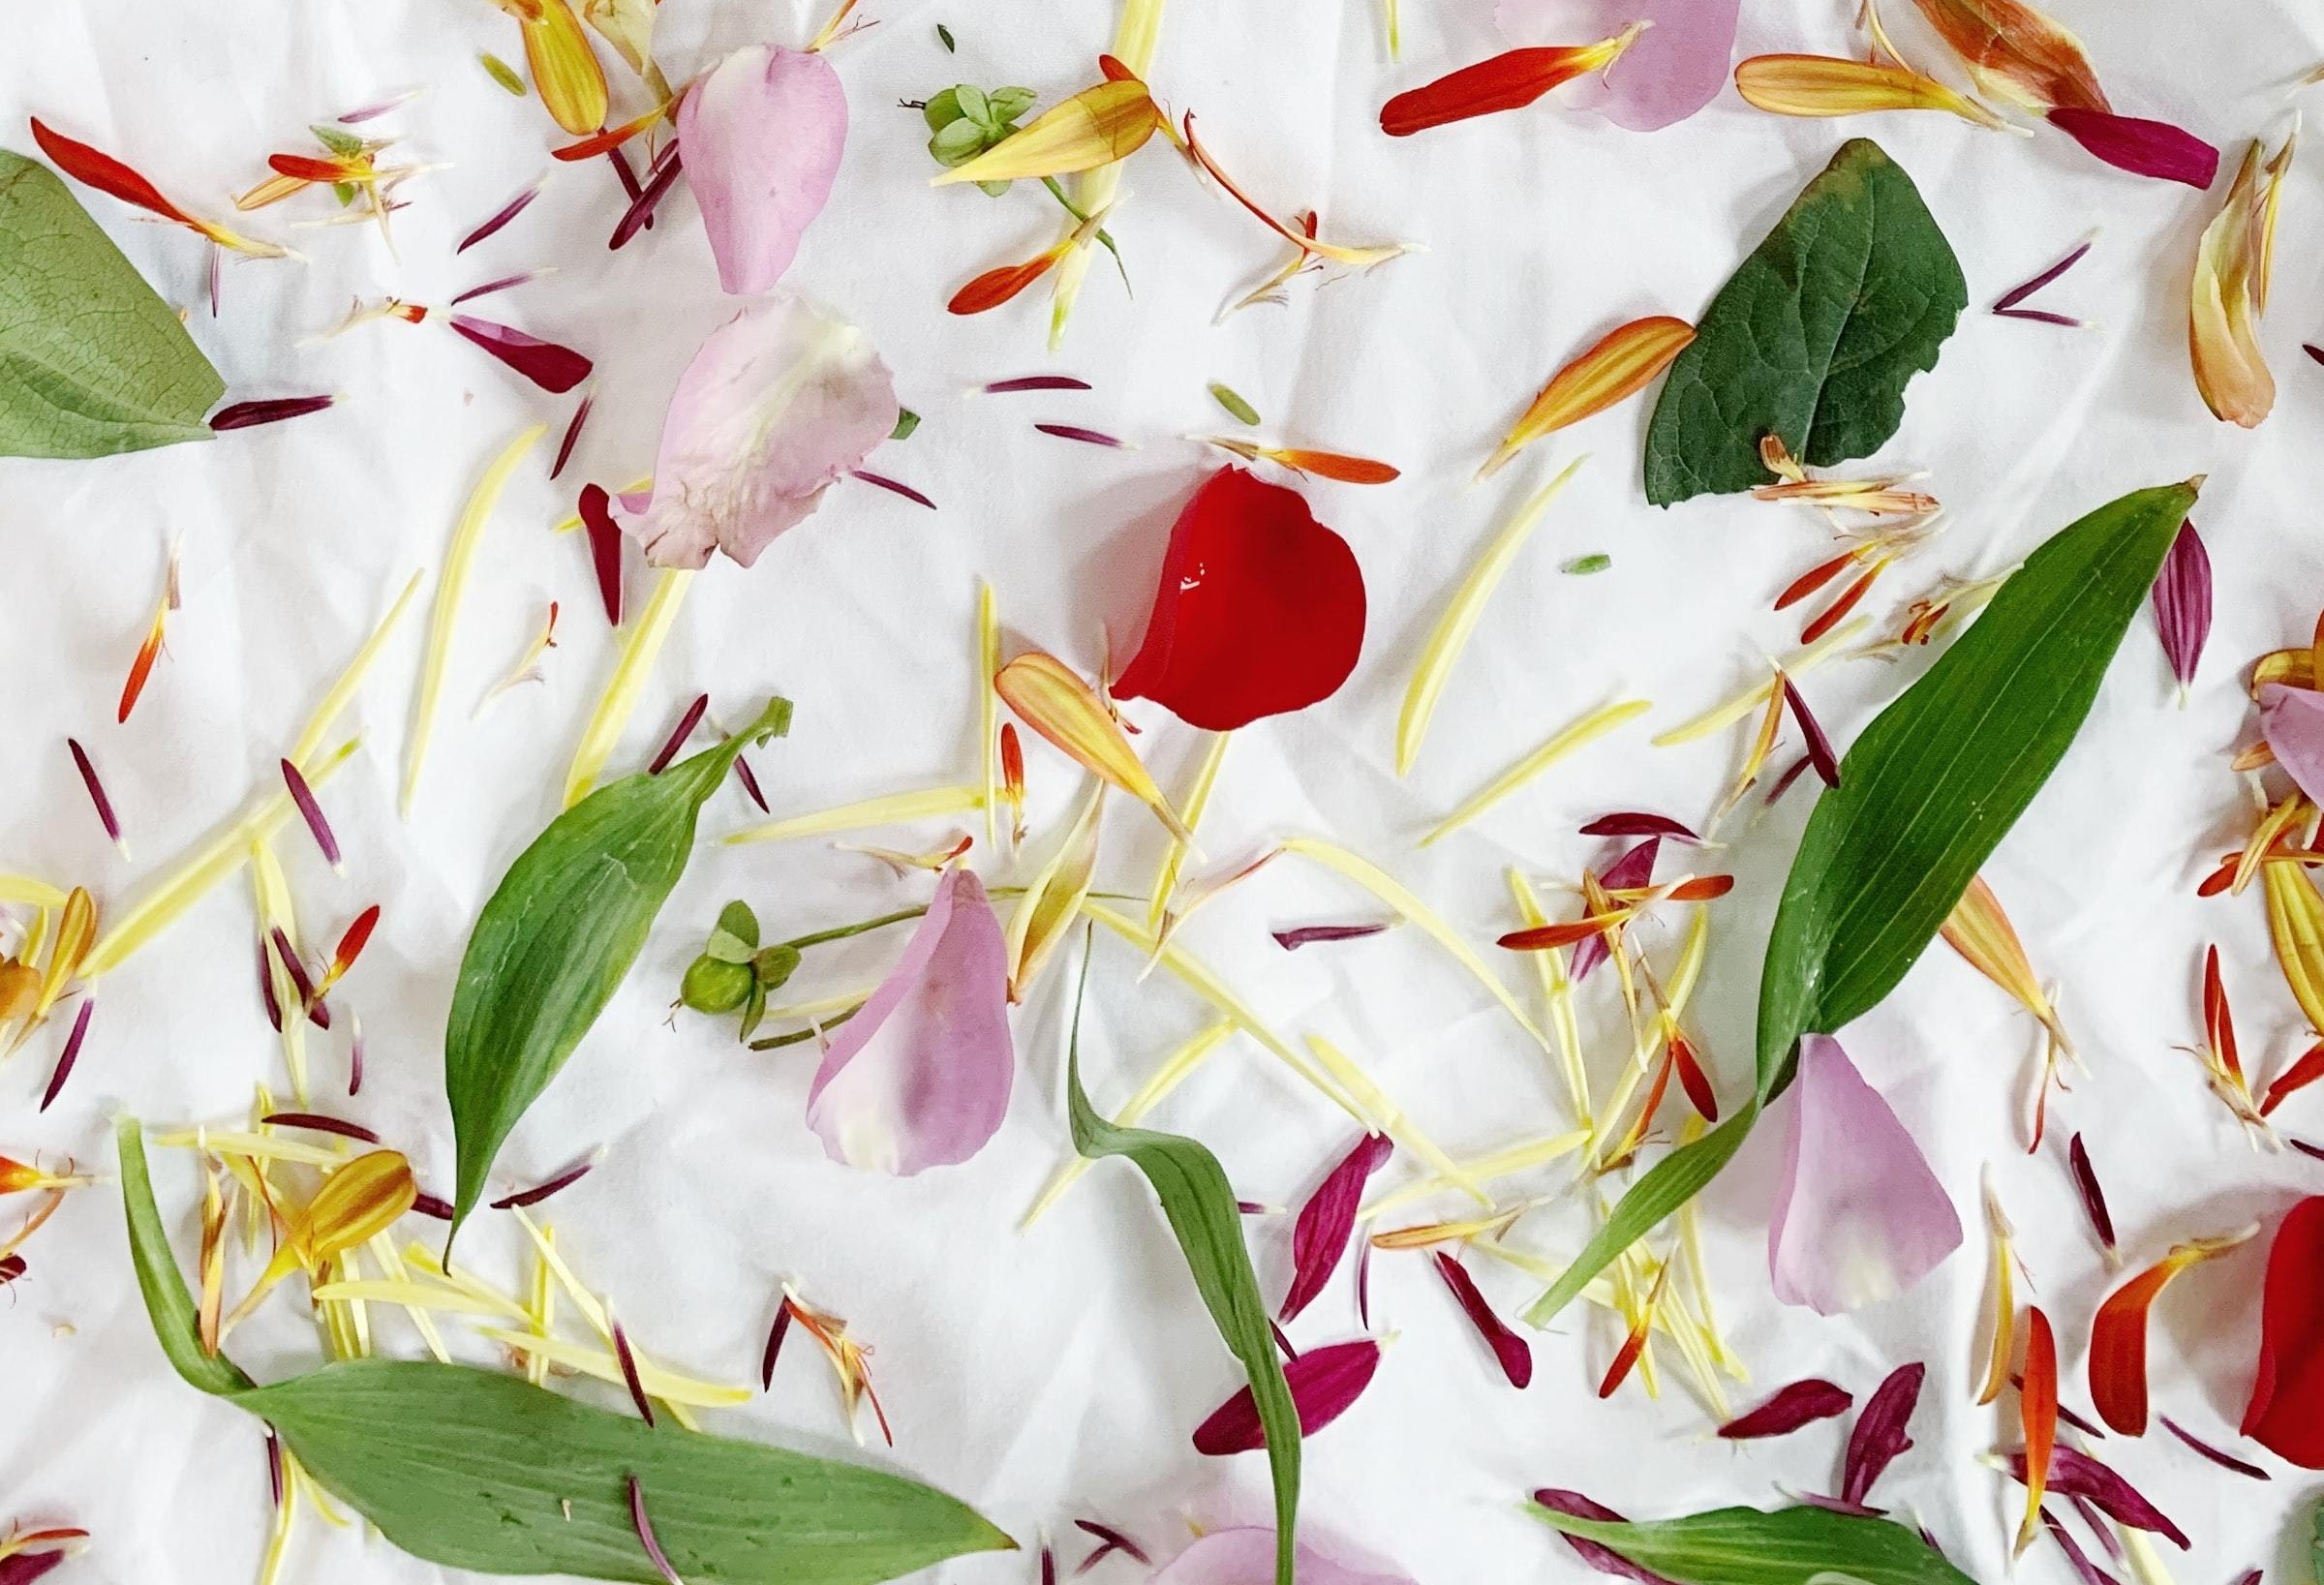 An assortment of colourful florals and leaves lie scattered across a white sheet